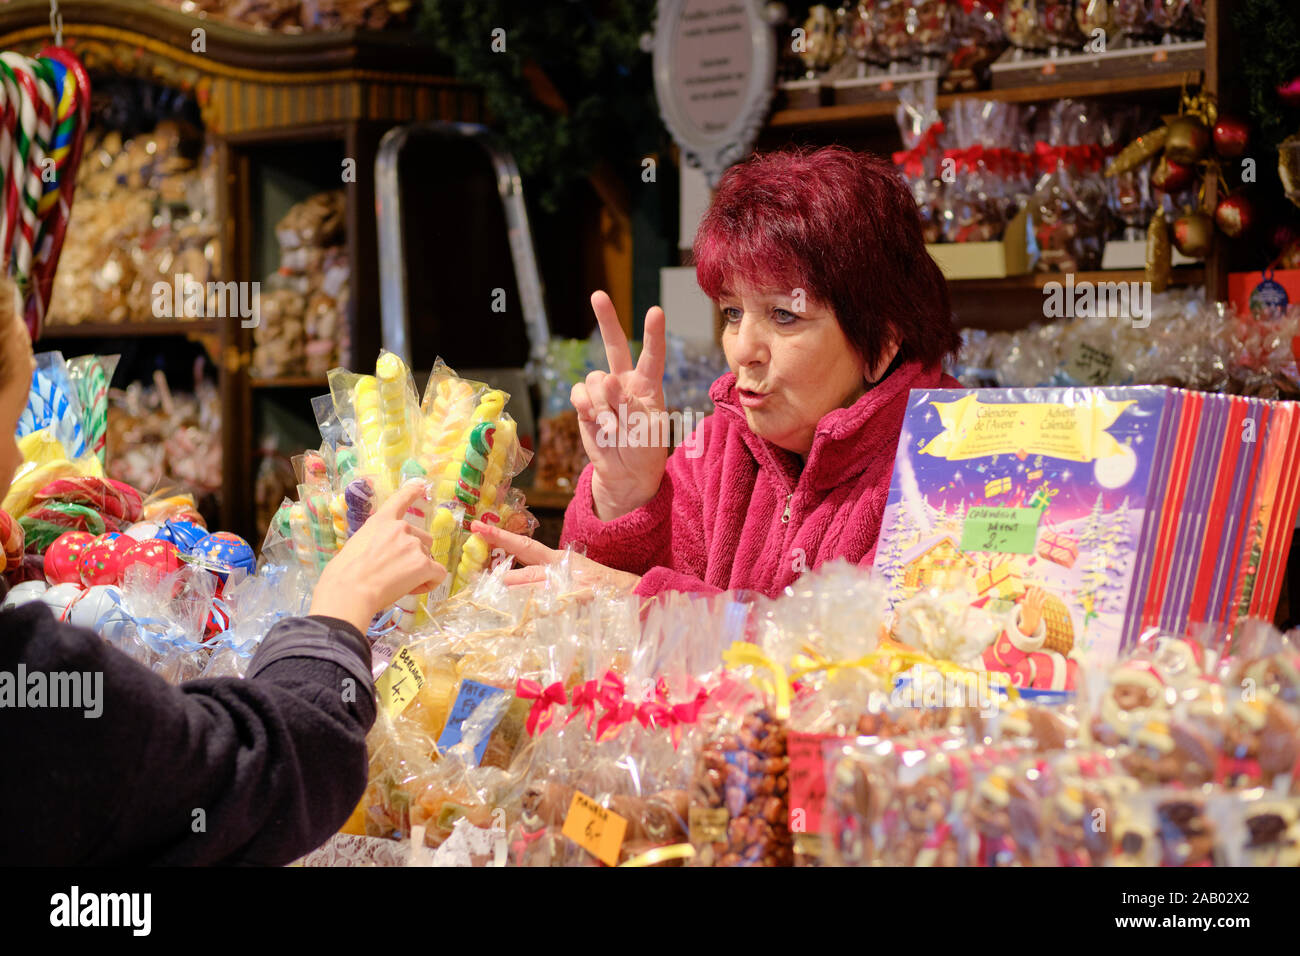 lady-food-vendor-in-a-candy-shop-showing-price-two-fingers-of-the-sweet-treats-to-a-faceless-customer-at-the-strasbourg-christmas-market-2AB02X2.jpg